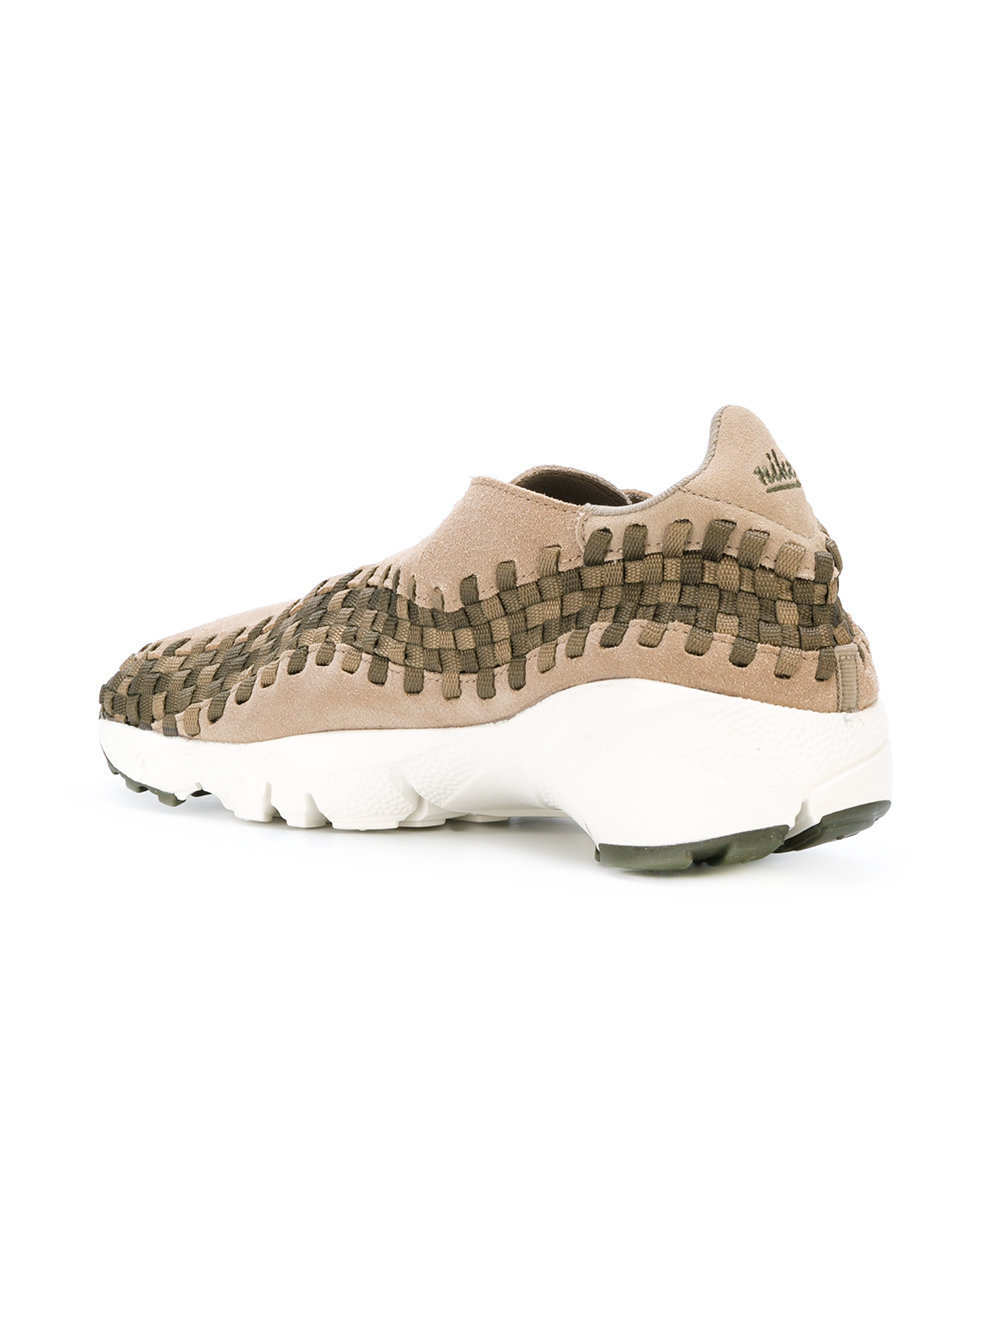 [VIPSALE] Nike/ Air Footscape NM Woven スニーカー